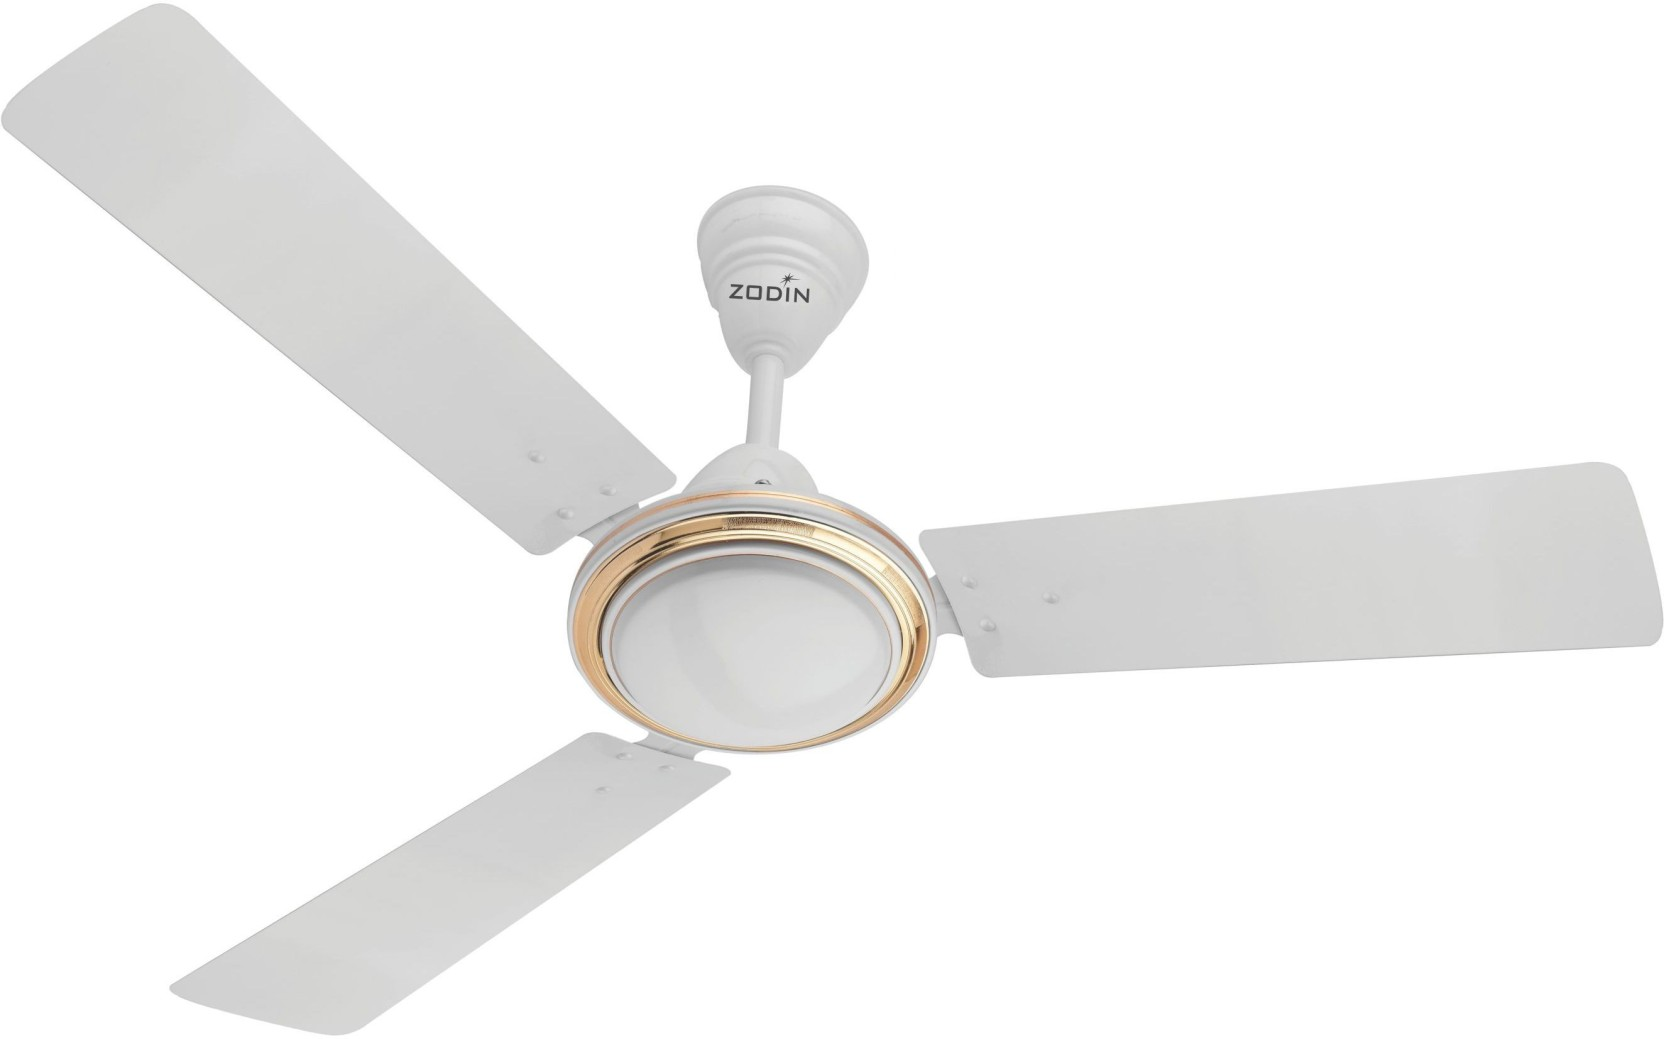 Zodin Rapid 1200mm High Speed 3 Blade Ceiling Fan Price In India Google On Wires And Wiring A Without Light Home